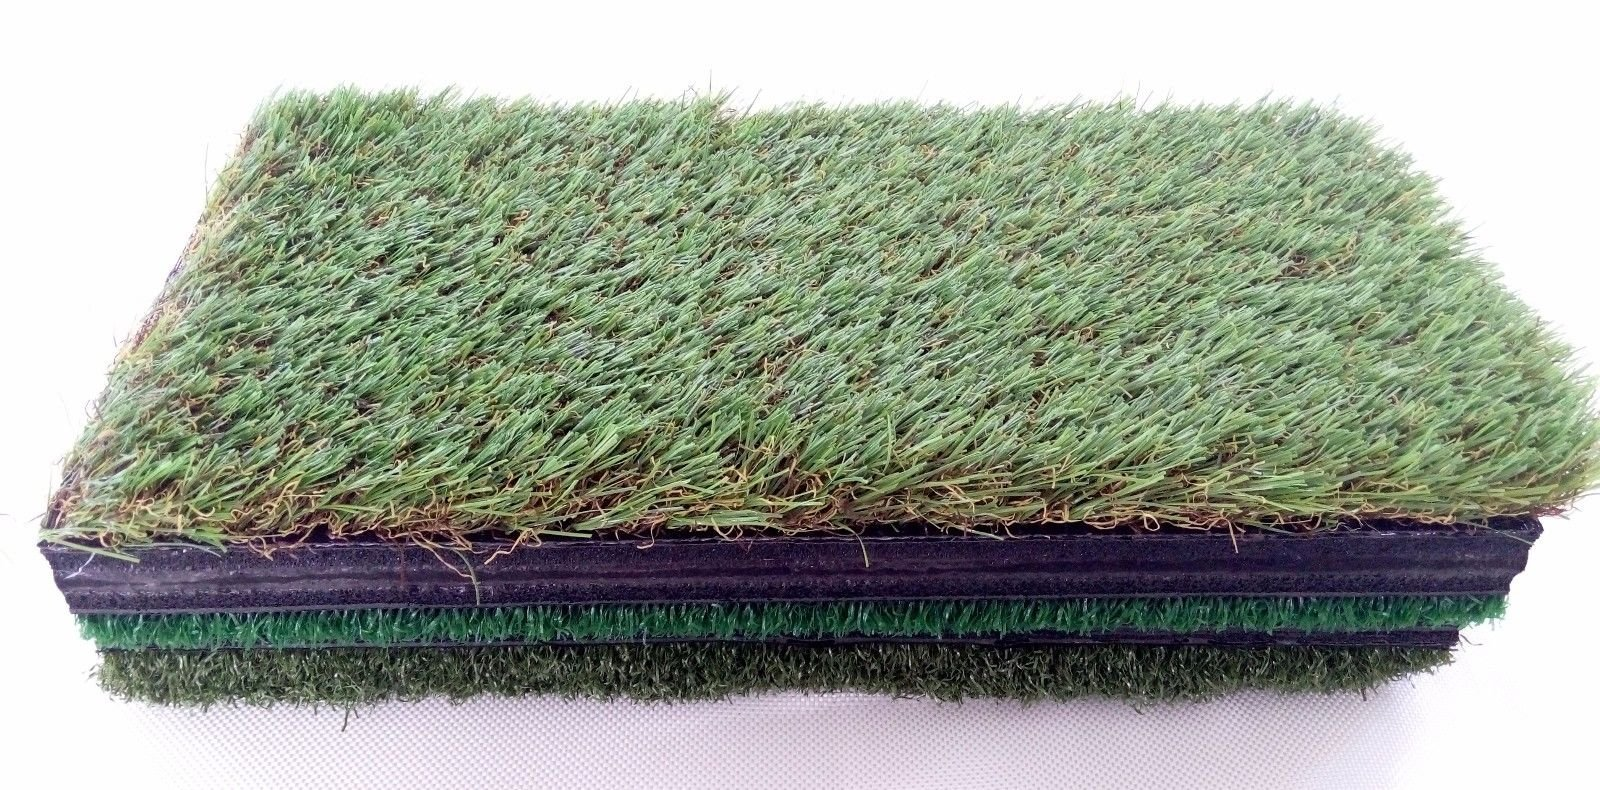 HealPT Golf Mat for Indoor or Outdoor Practice - Multi Surface Golf Hitting Mat Perfect for Backyard Practice - 6 Foam Golf Balls Included